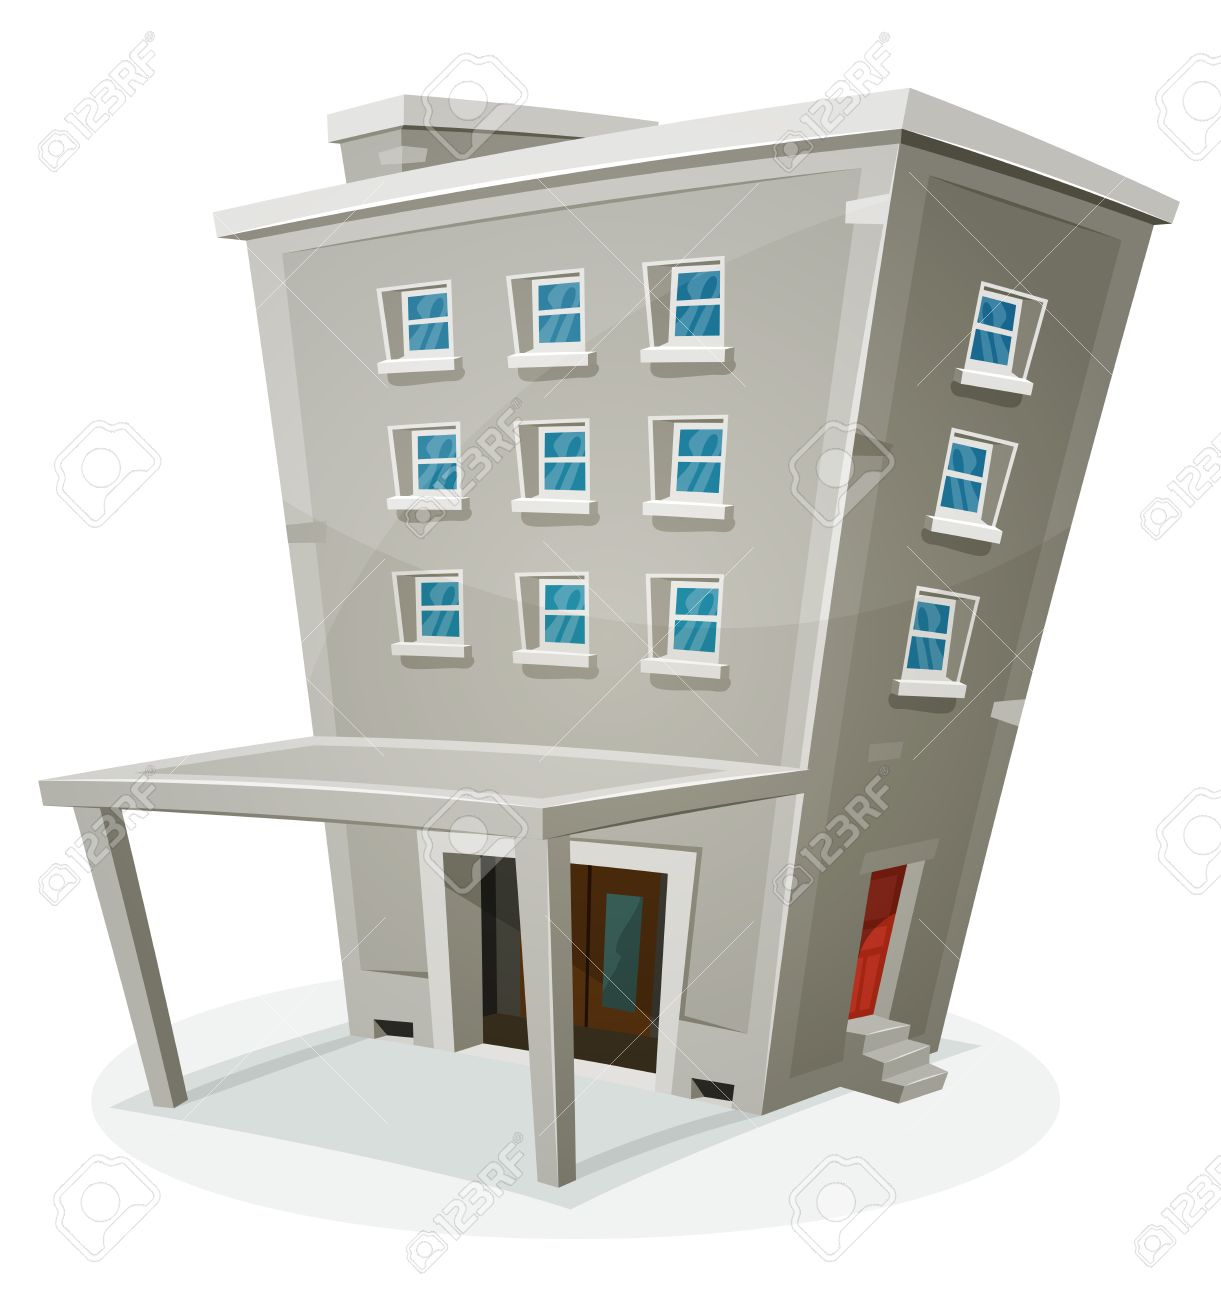 Illustration Of A Cartoon Stone Building House With Levels, Entrance, Hall,  Porch,